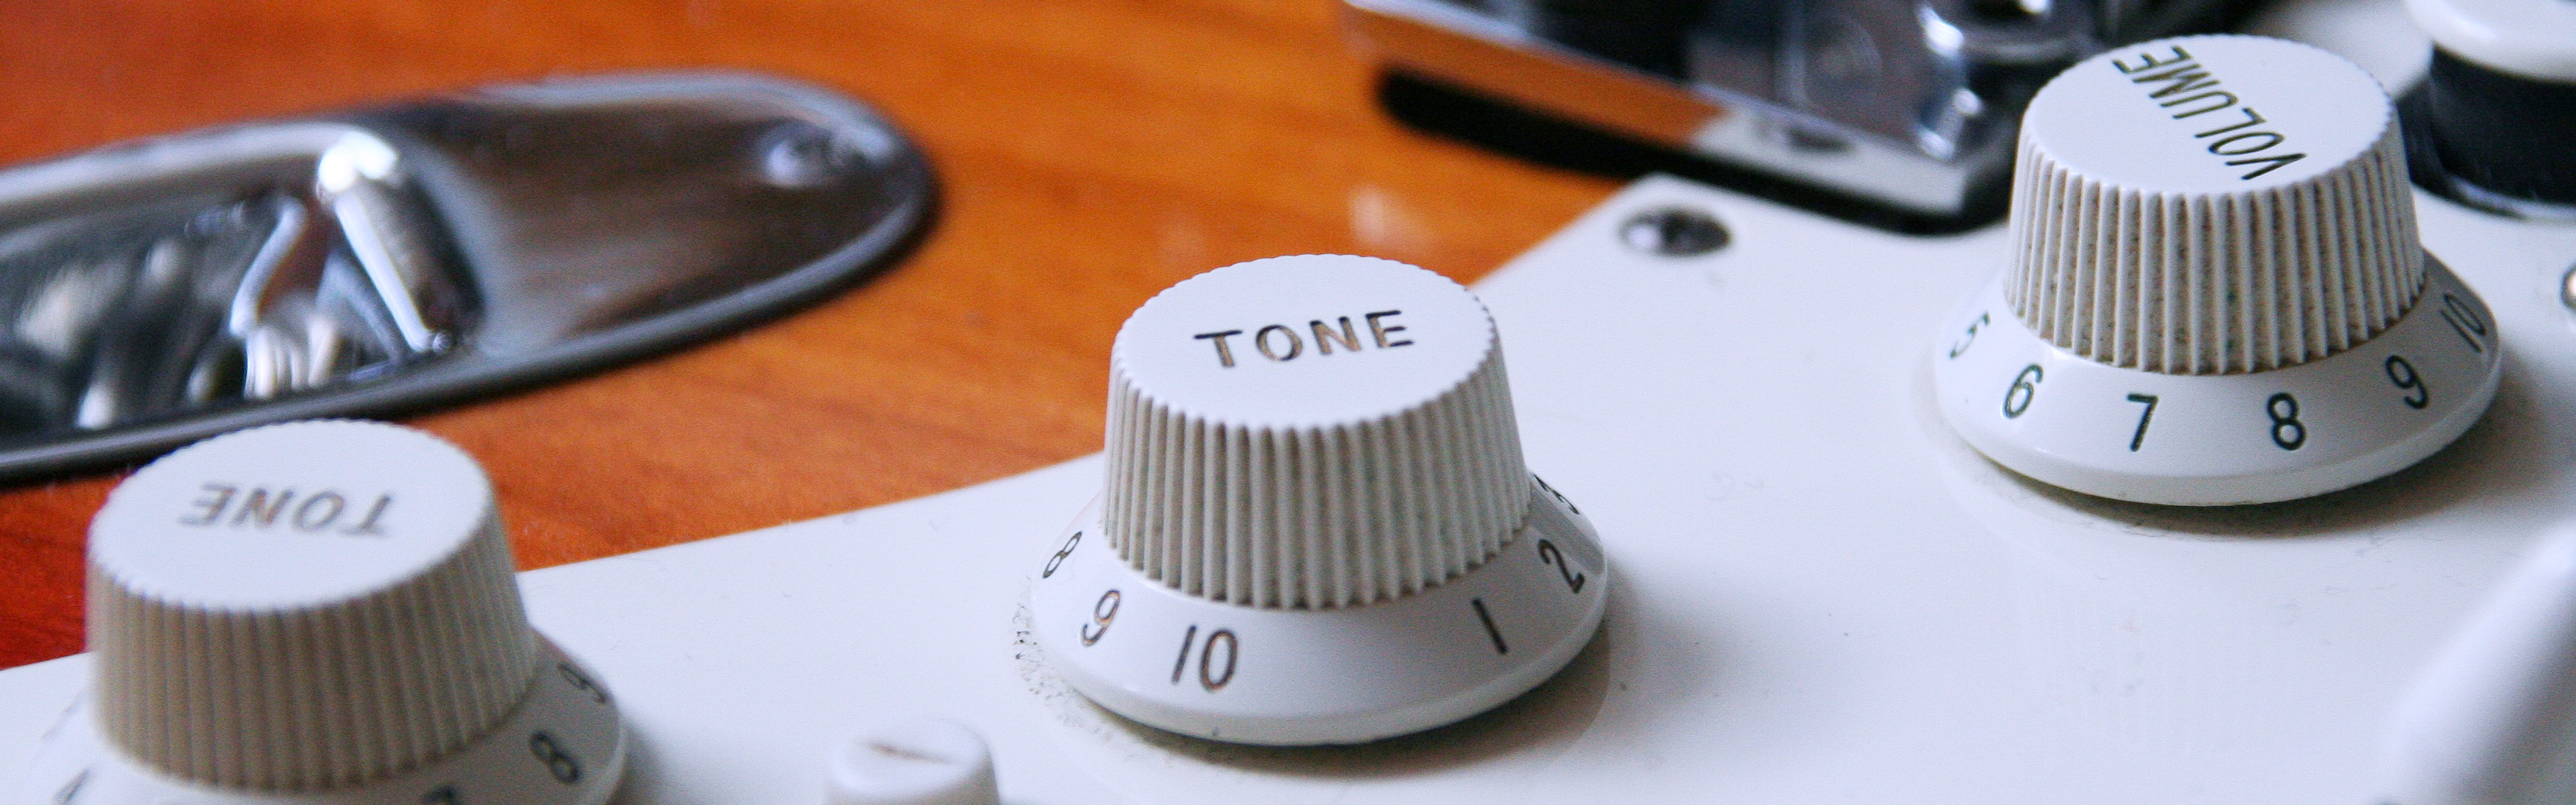 How To Fix Your Brand's Tone Of Voice